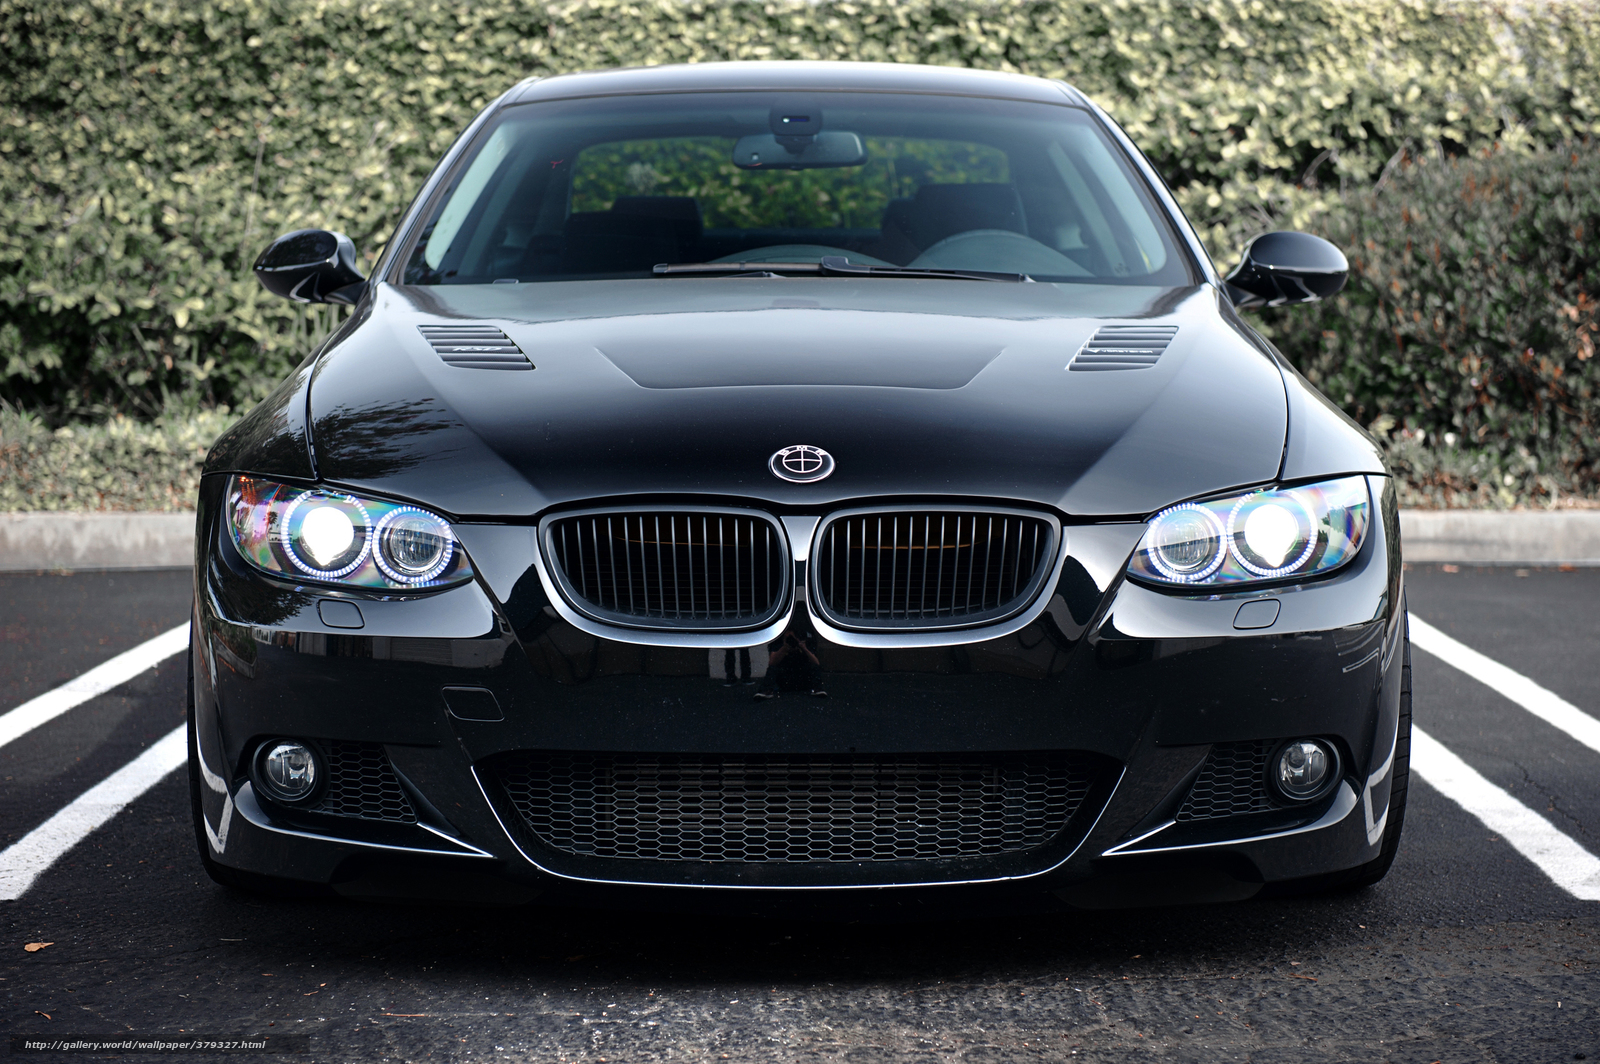 Murdered Out Cars For Sale >> Download wallpaper BMW, Black, parking, bmw free desktop wallpaper in the resolution 2560x1703 ...